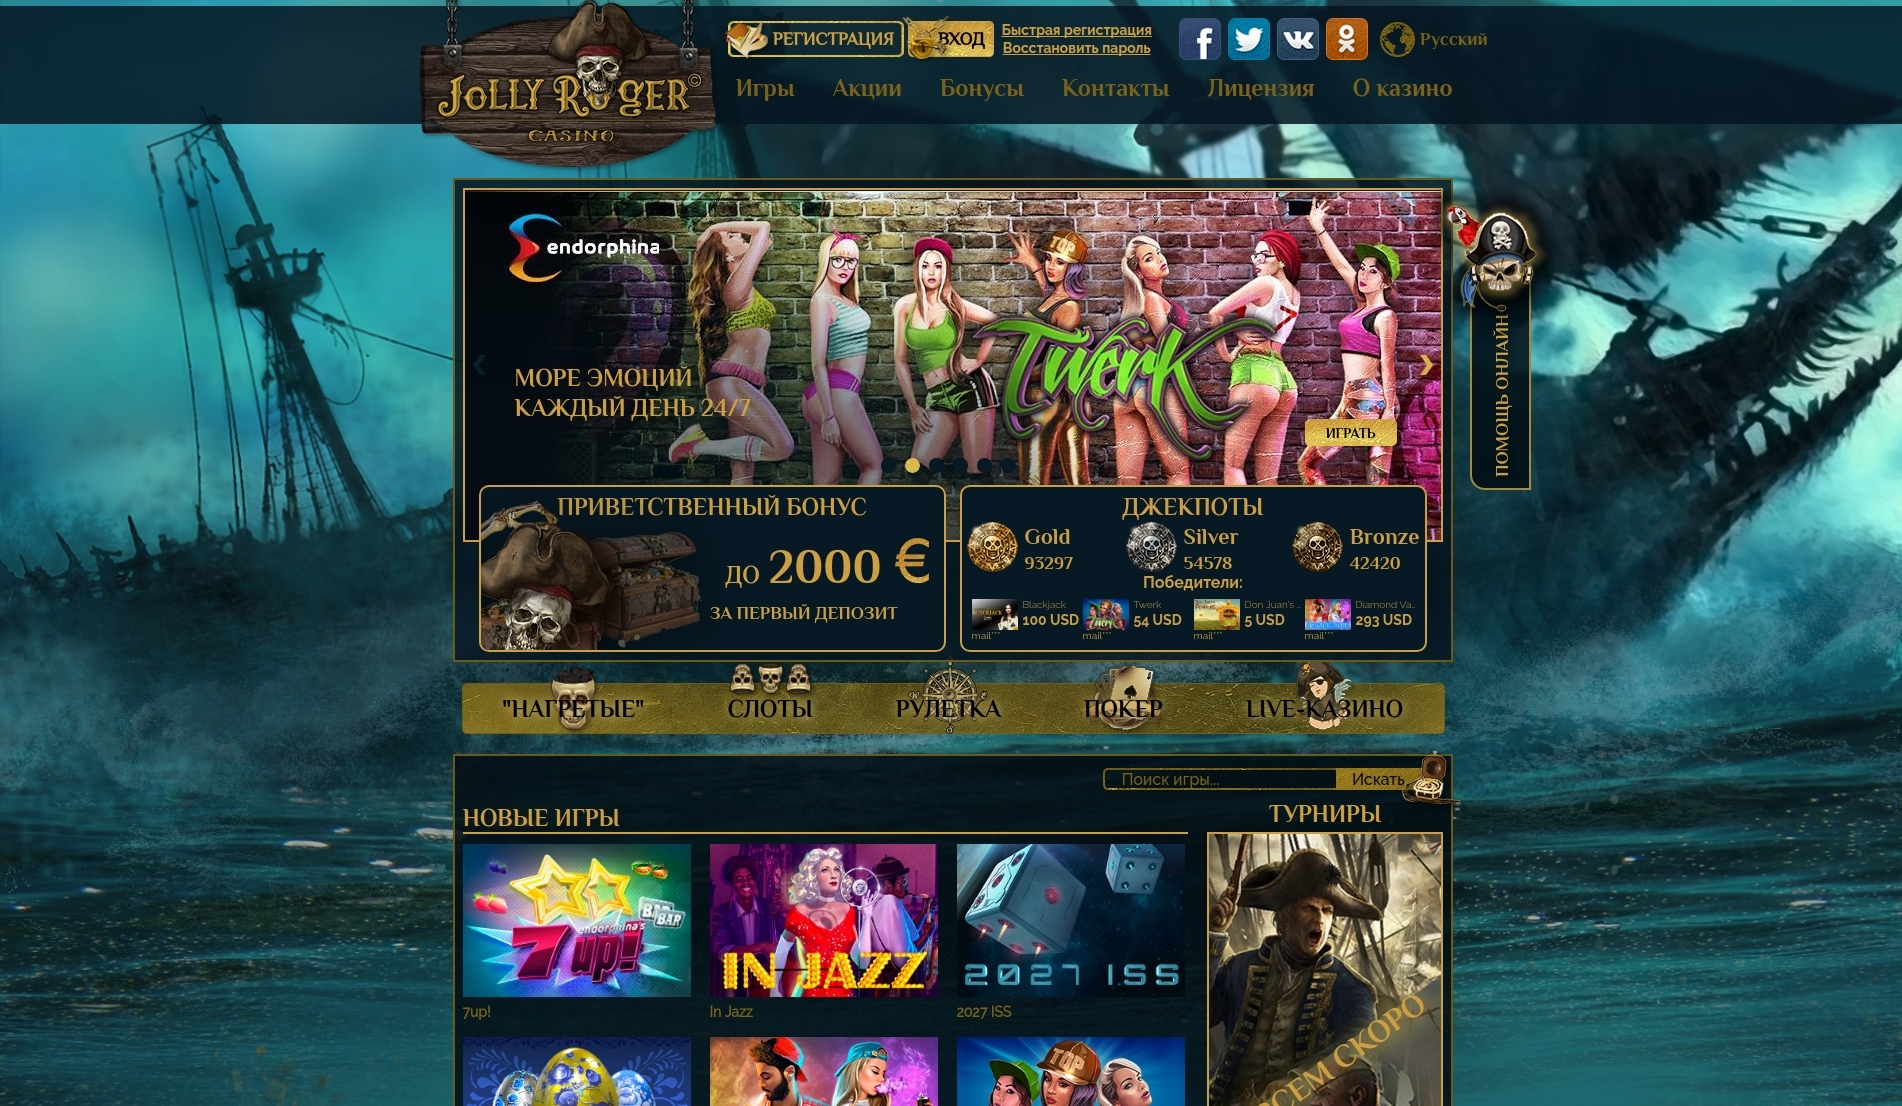 jolly roger casino